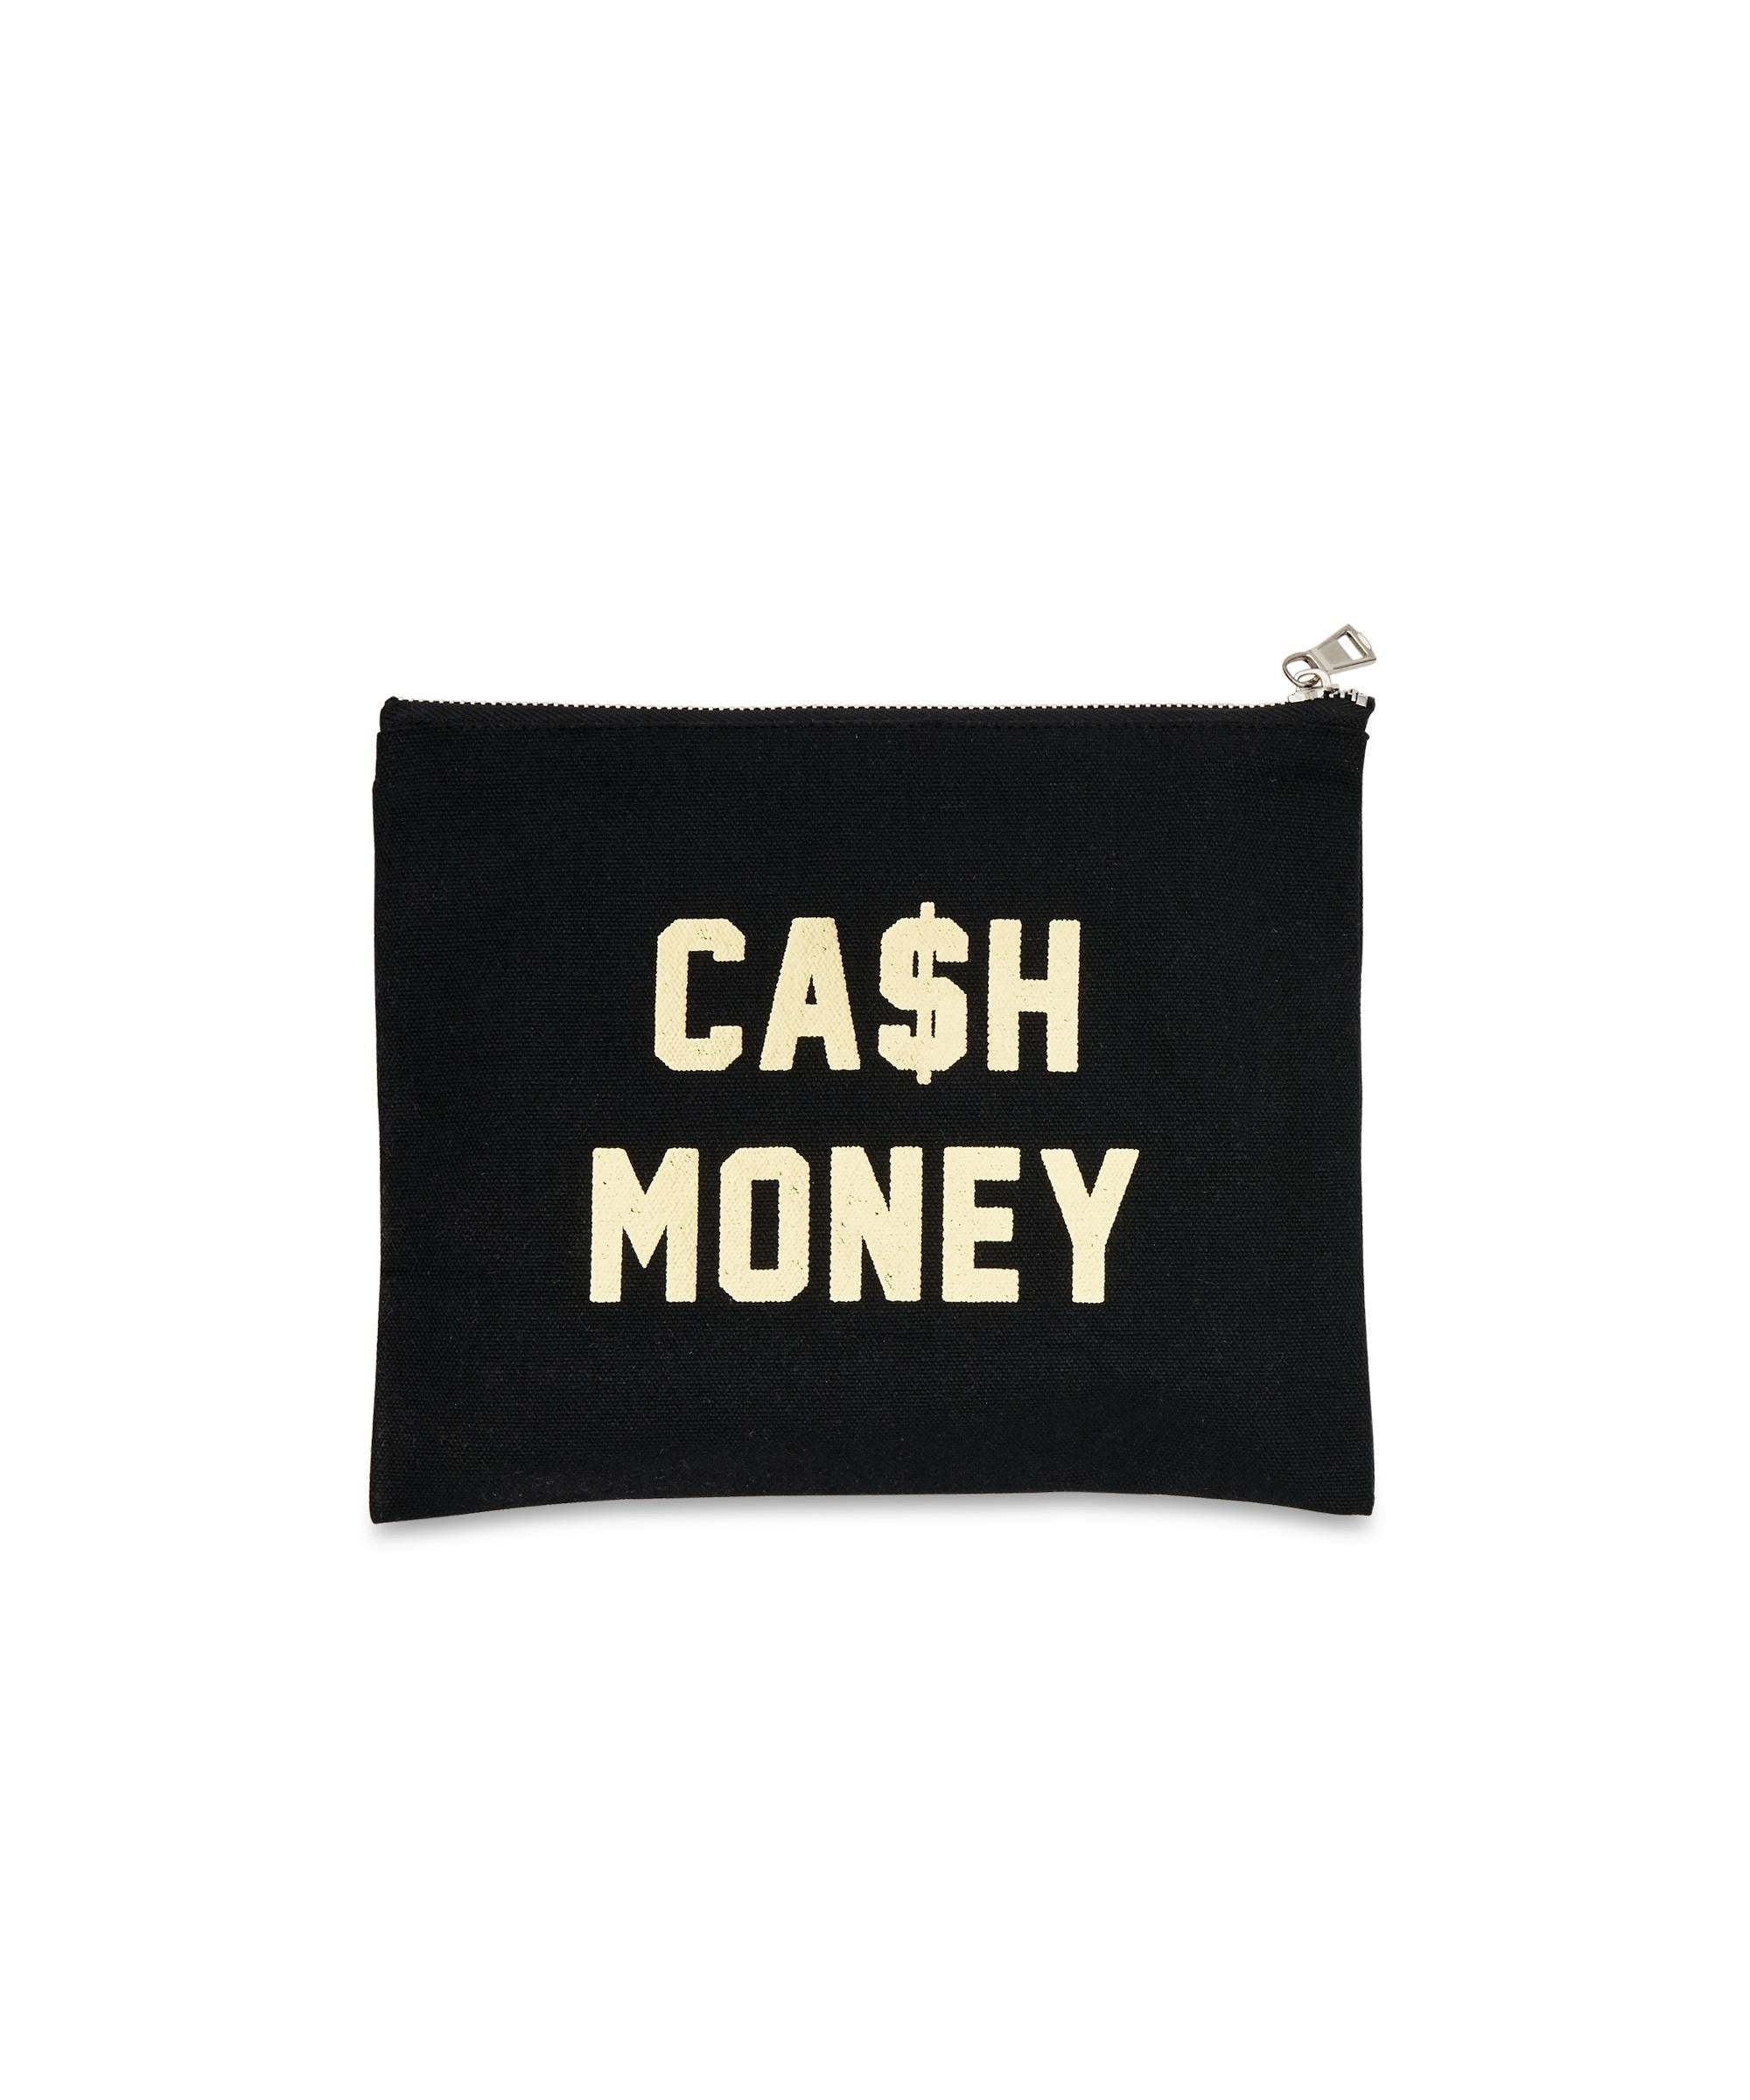 REASON Cash Money Pouch (Black)